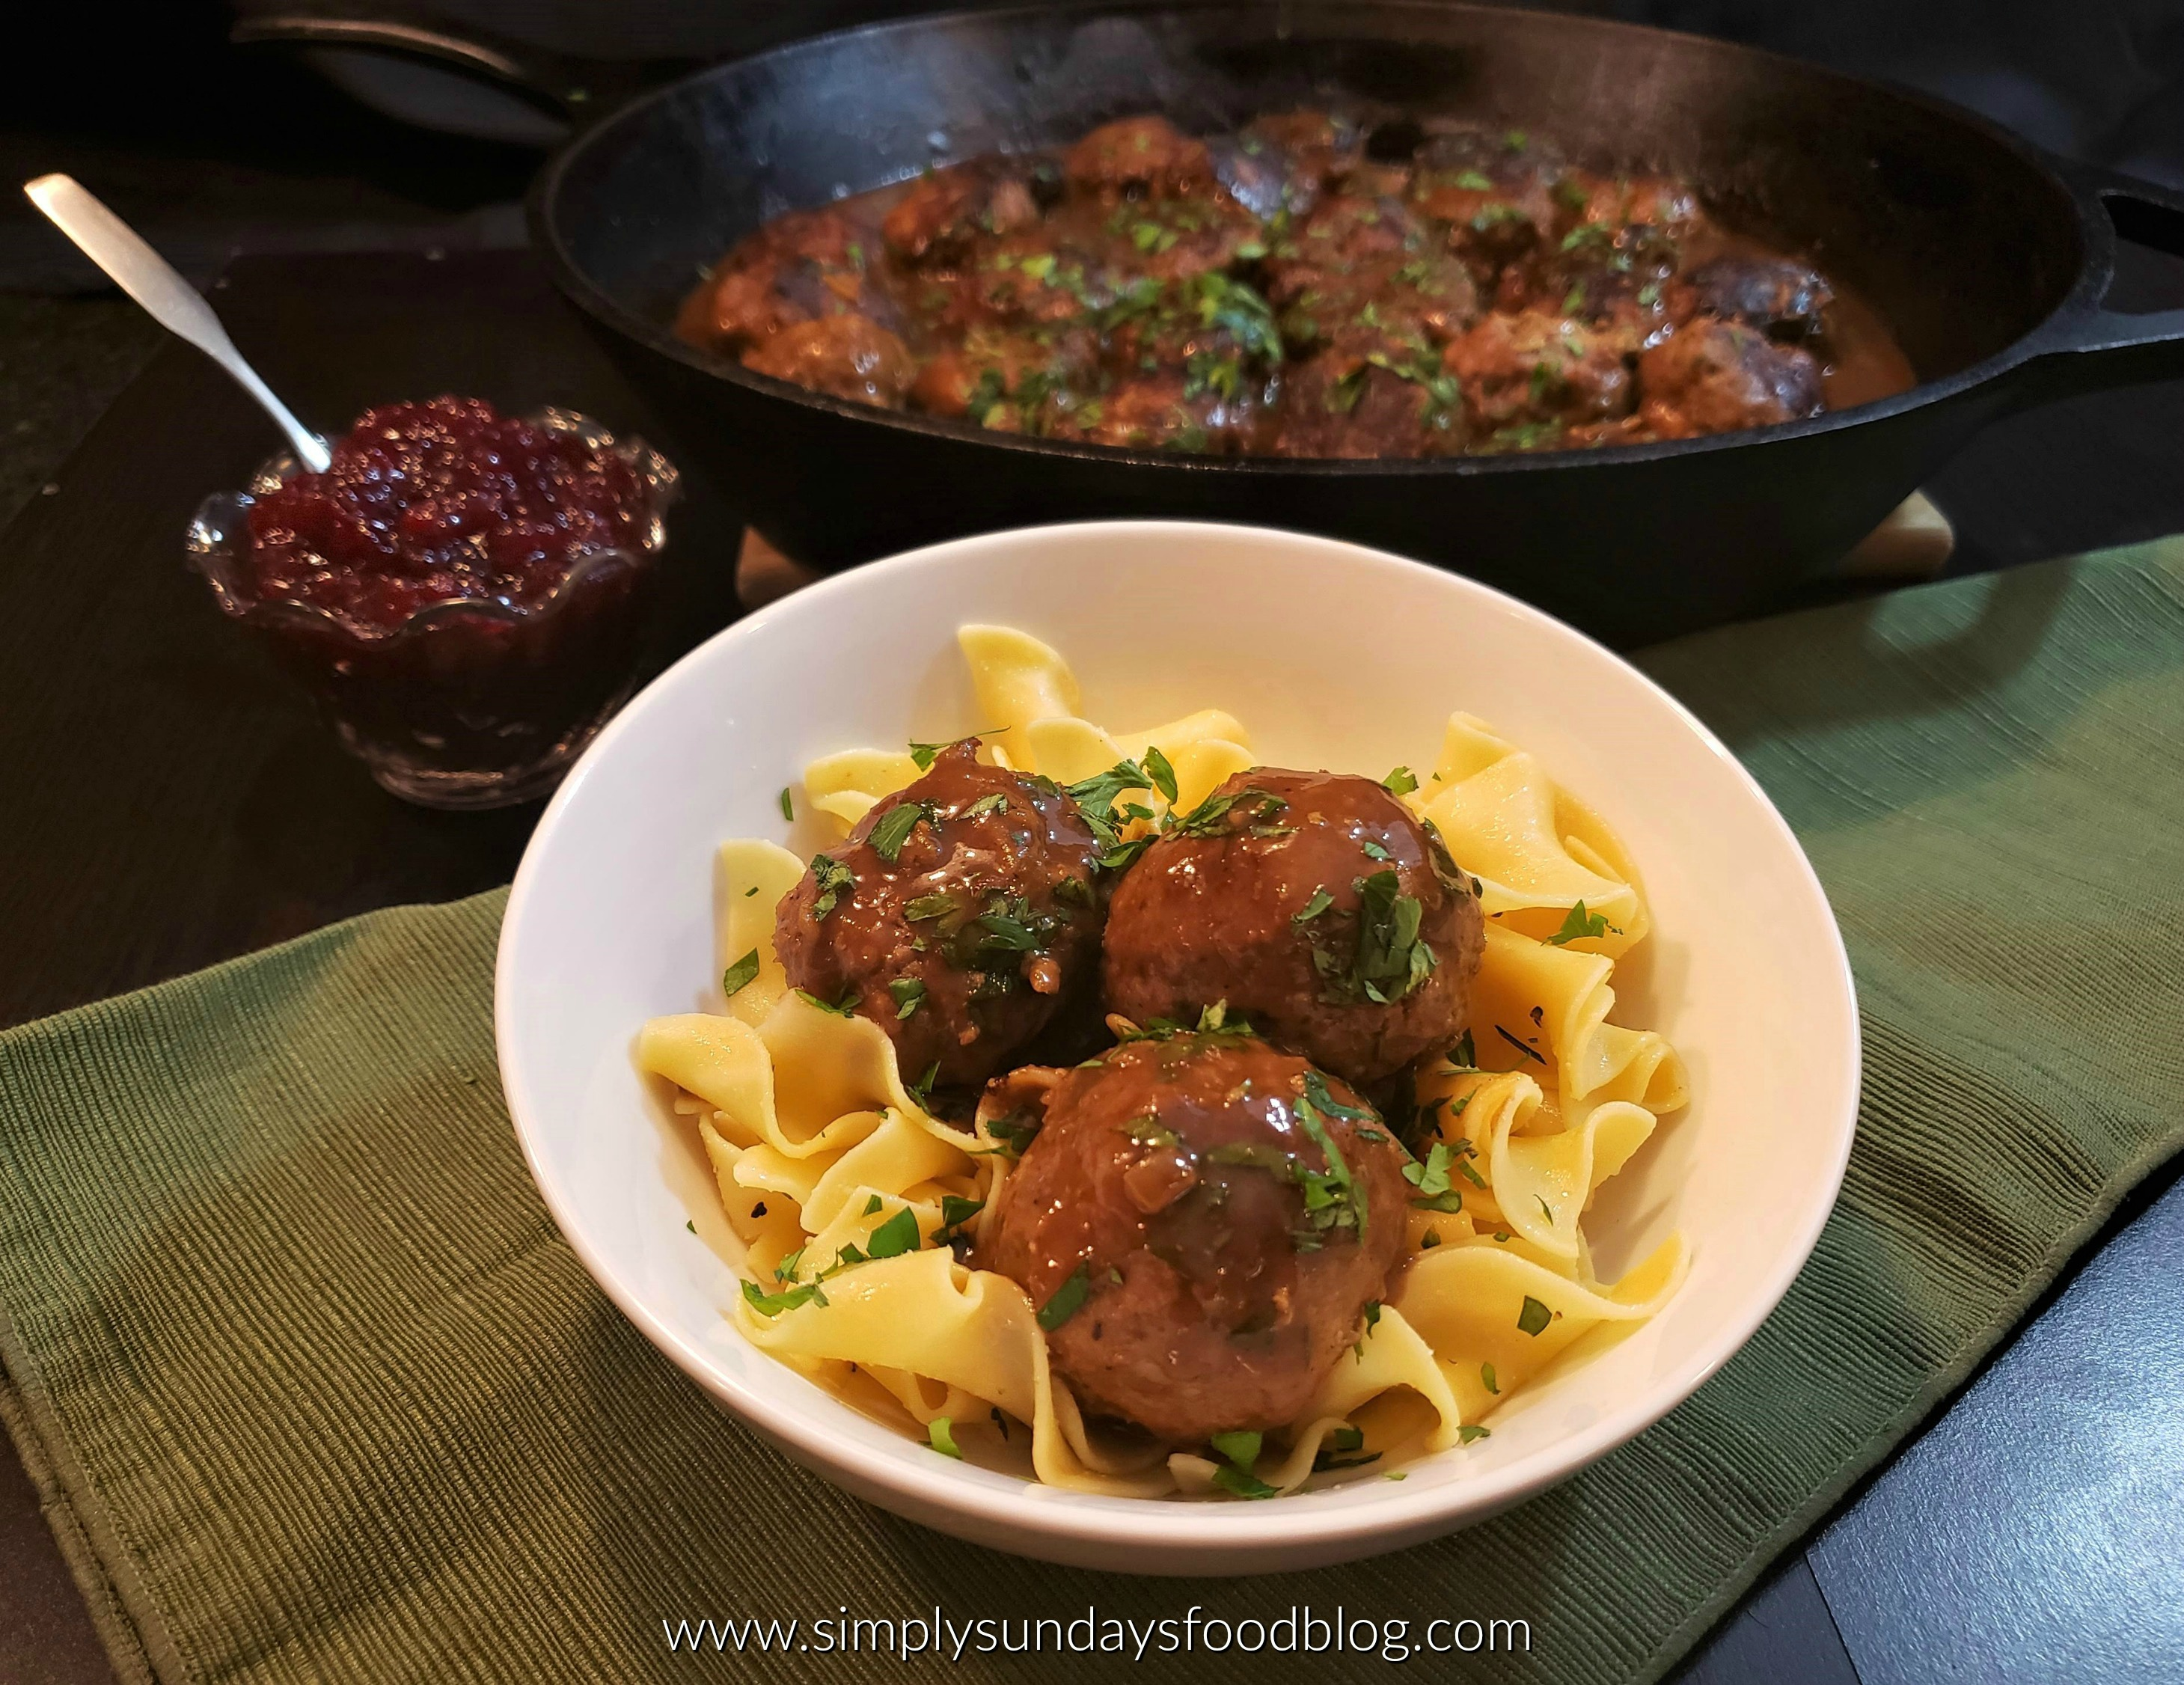 A green cloth with a white bowl on top. In the bowl is a bed of yellow cooked egg noodles. Nestled in the egg noodles are three swedish meatballs in gravy sprinkled with fresh green chopped parsley. In the background is is a large black cast iron pan filled with the rest of the meatballs. In a small bowl is purplish lingonberry jam with a silver spoon sticking out.